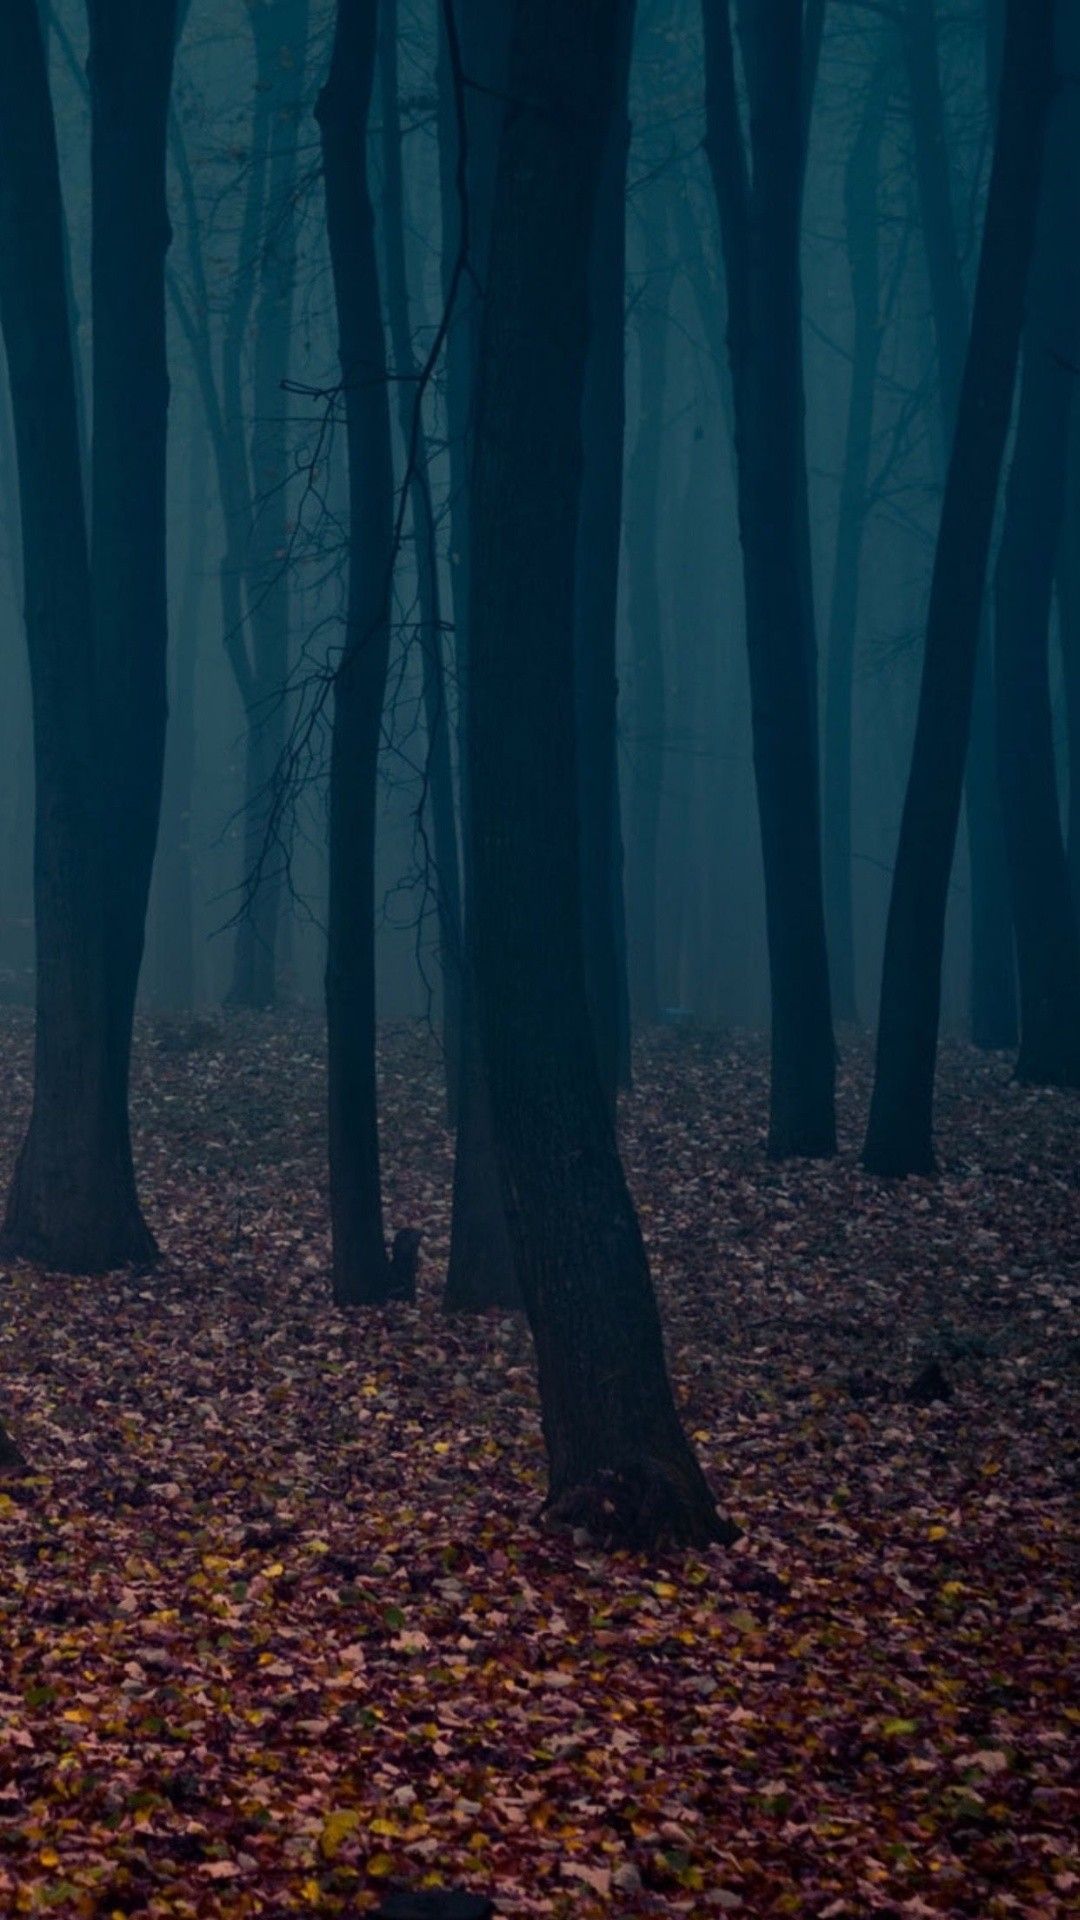 Spooky Autumn Forest Leafbed iPhone 6 Plus HD Wallpaper …